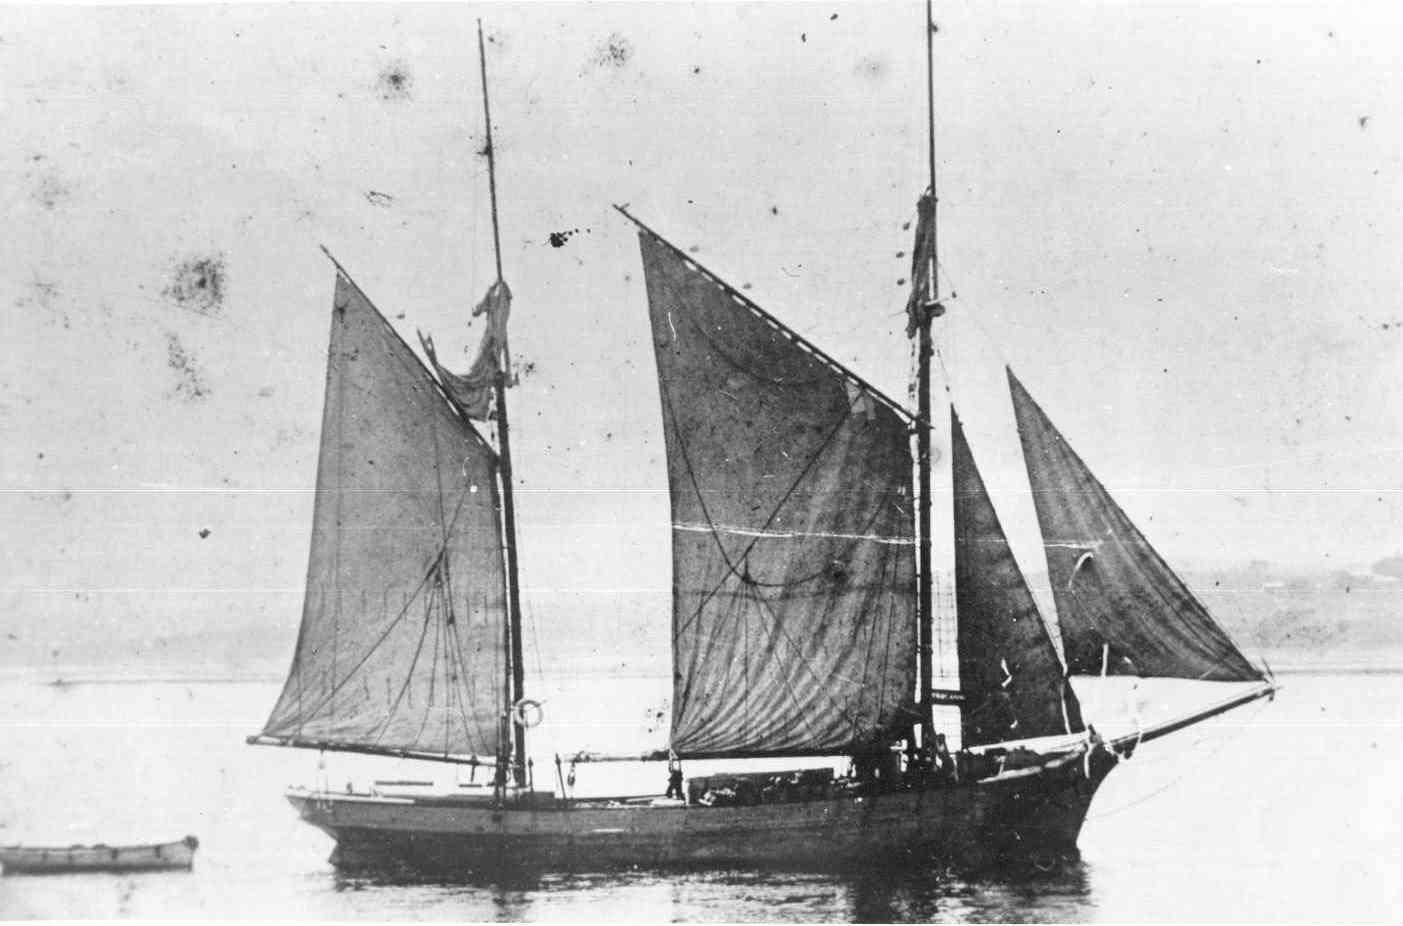 Ketch off Newhaven, Phillip Island